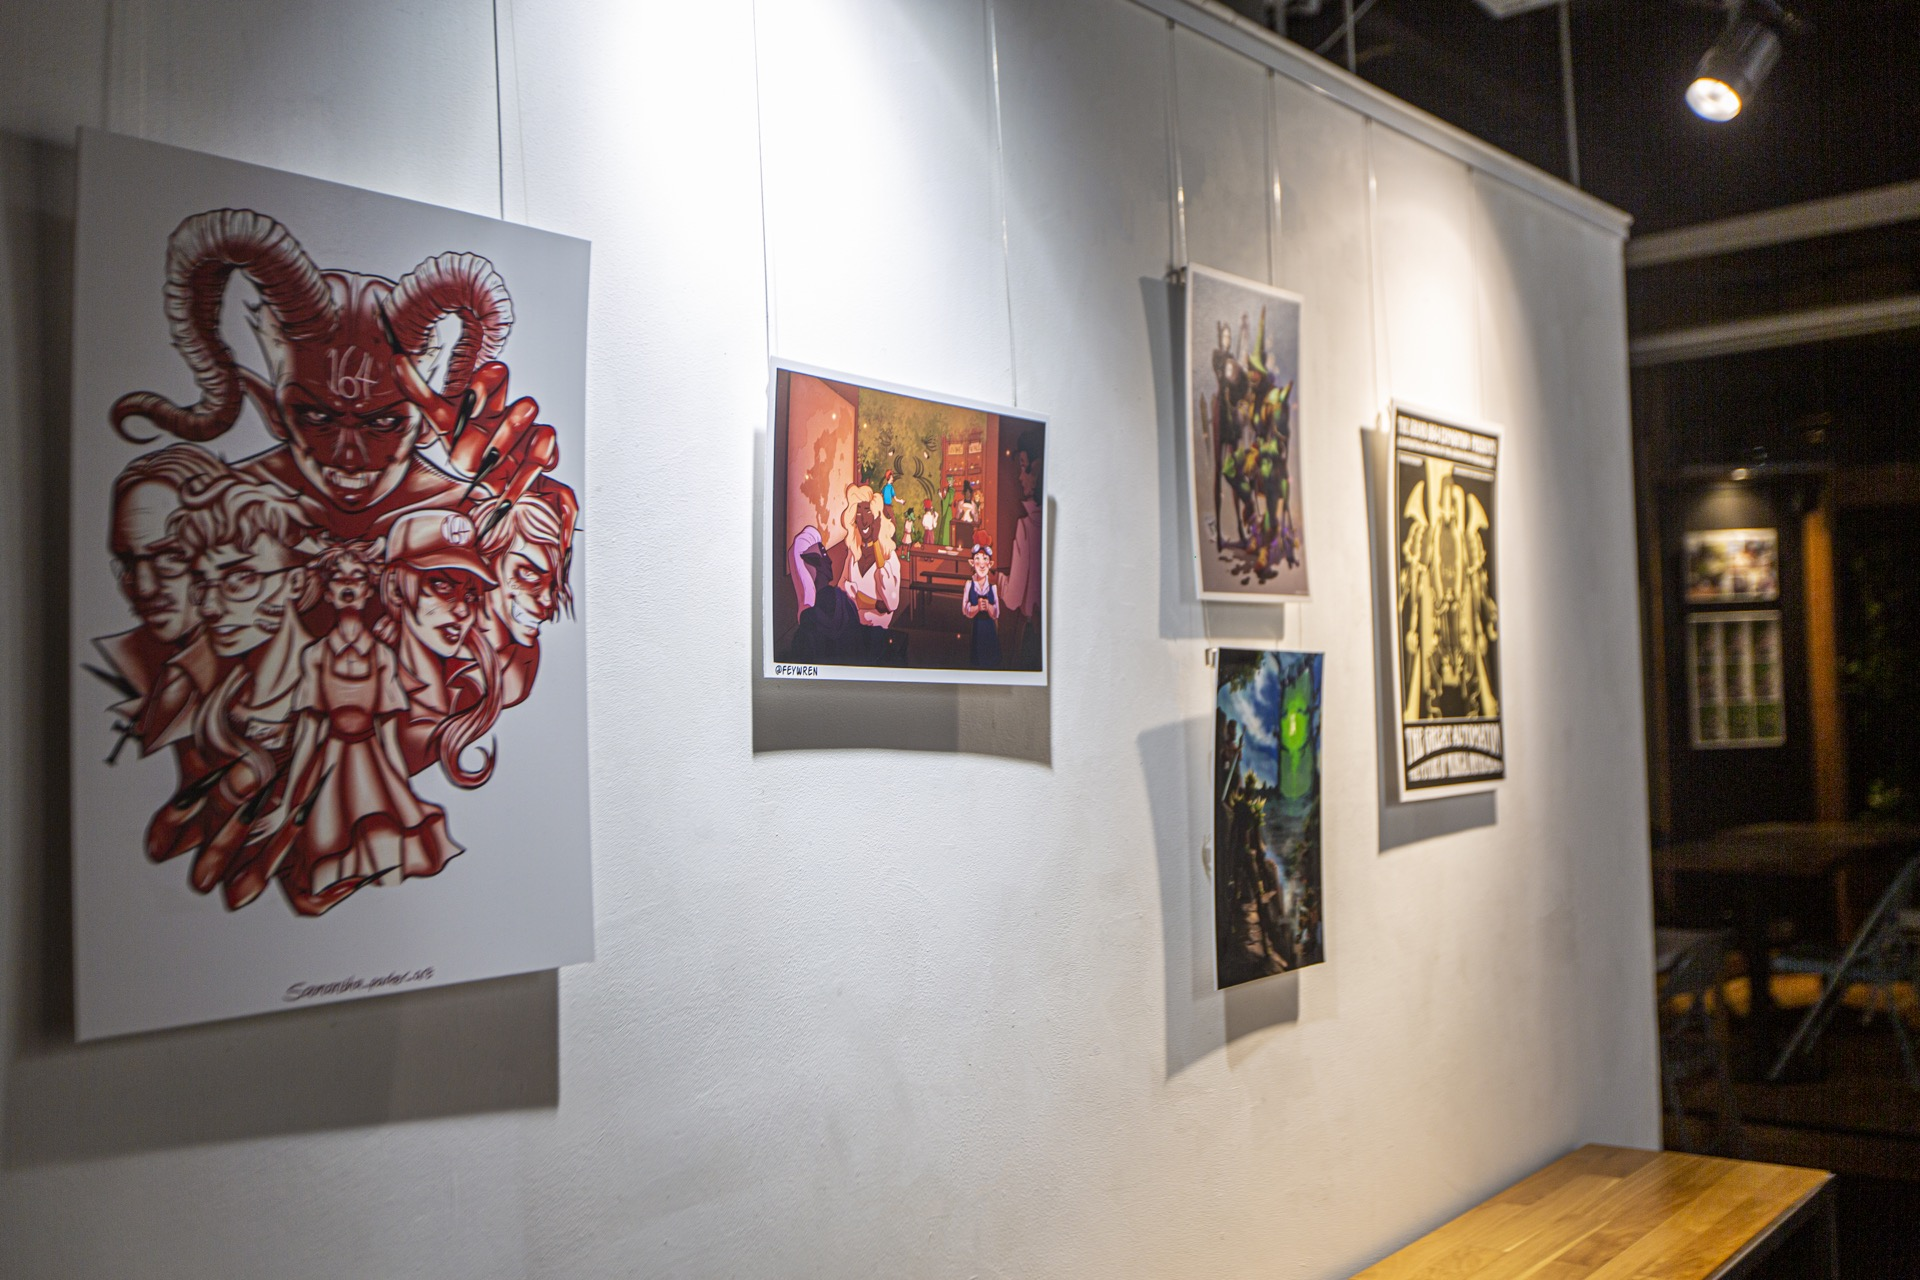 Comic Art Exhibition at The Gallery at 164, October 2019